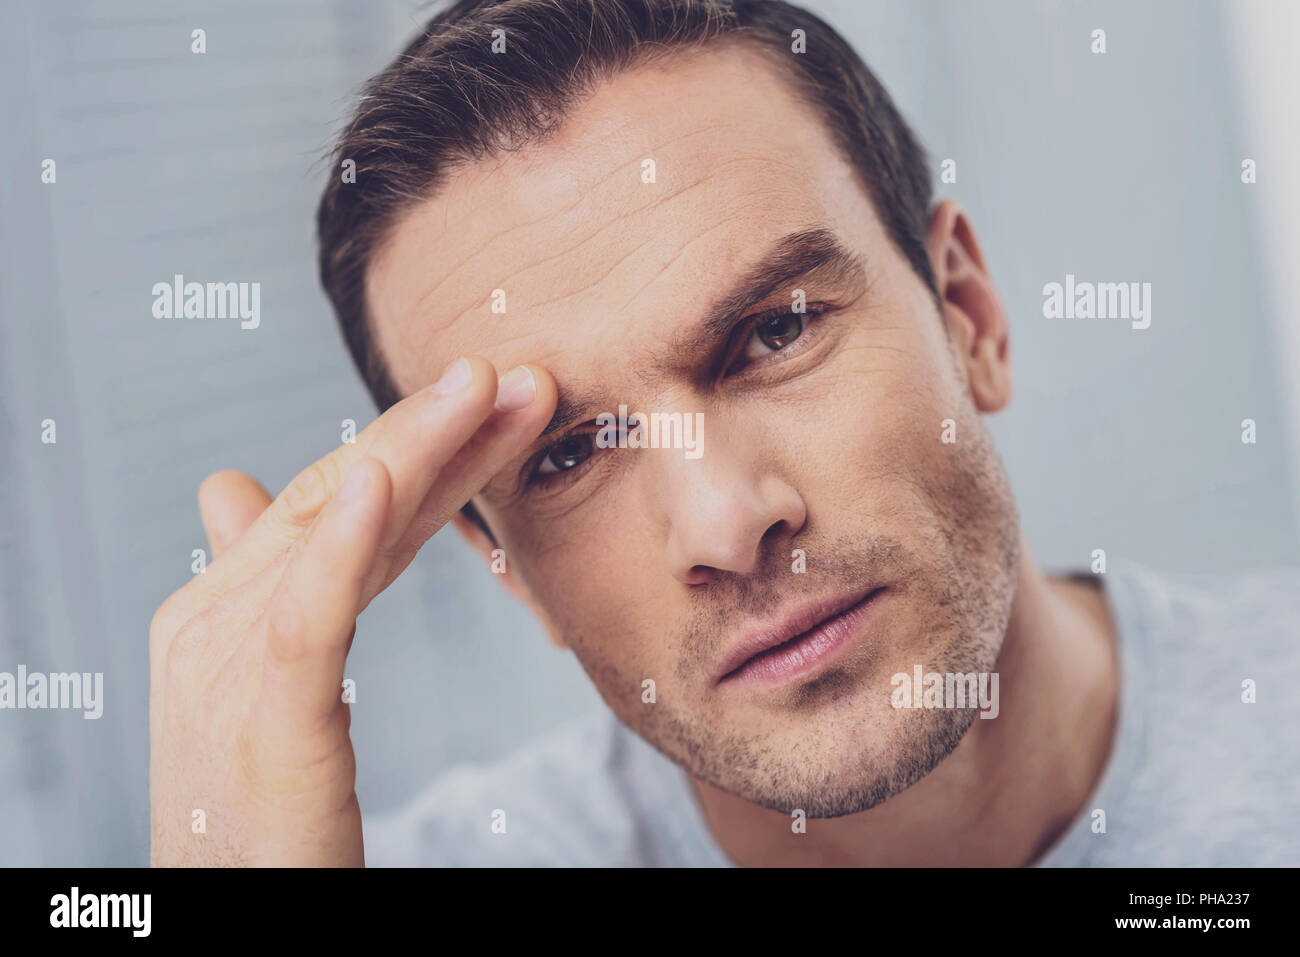 Mature man touching his eyebrow while having migraine - Stock Image